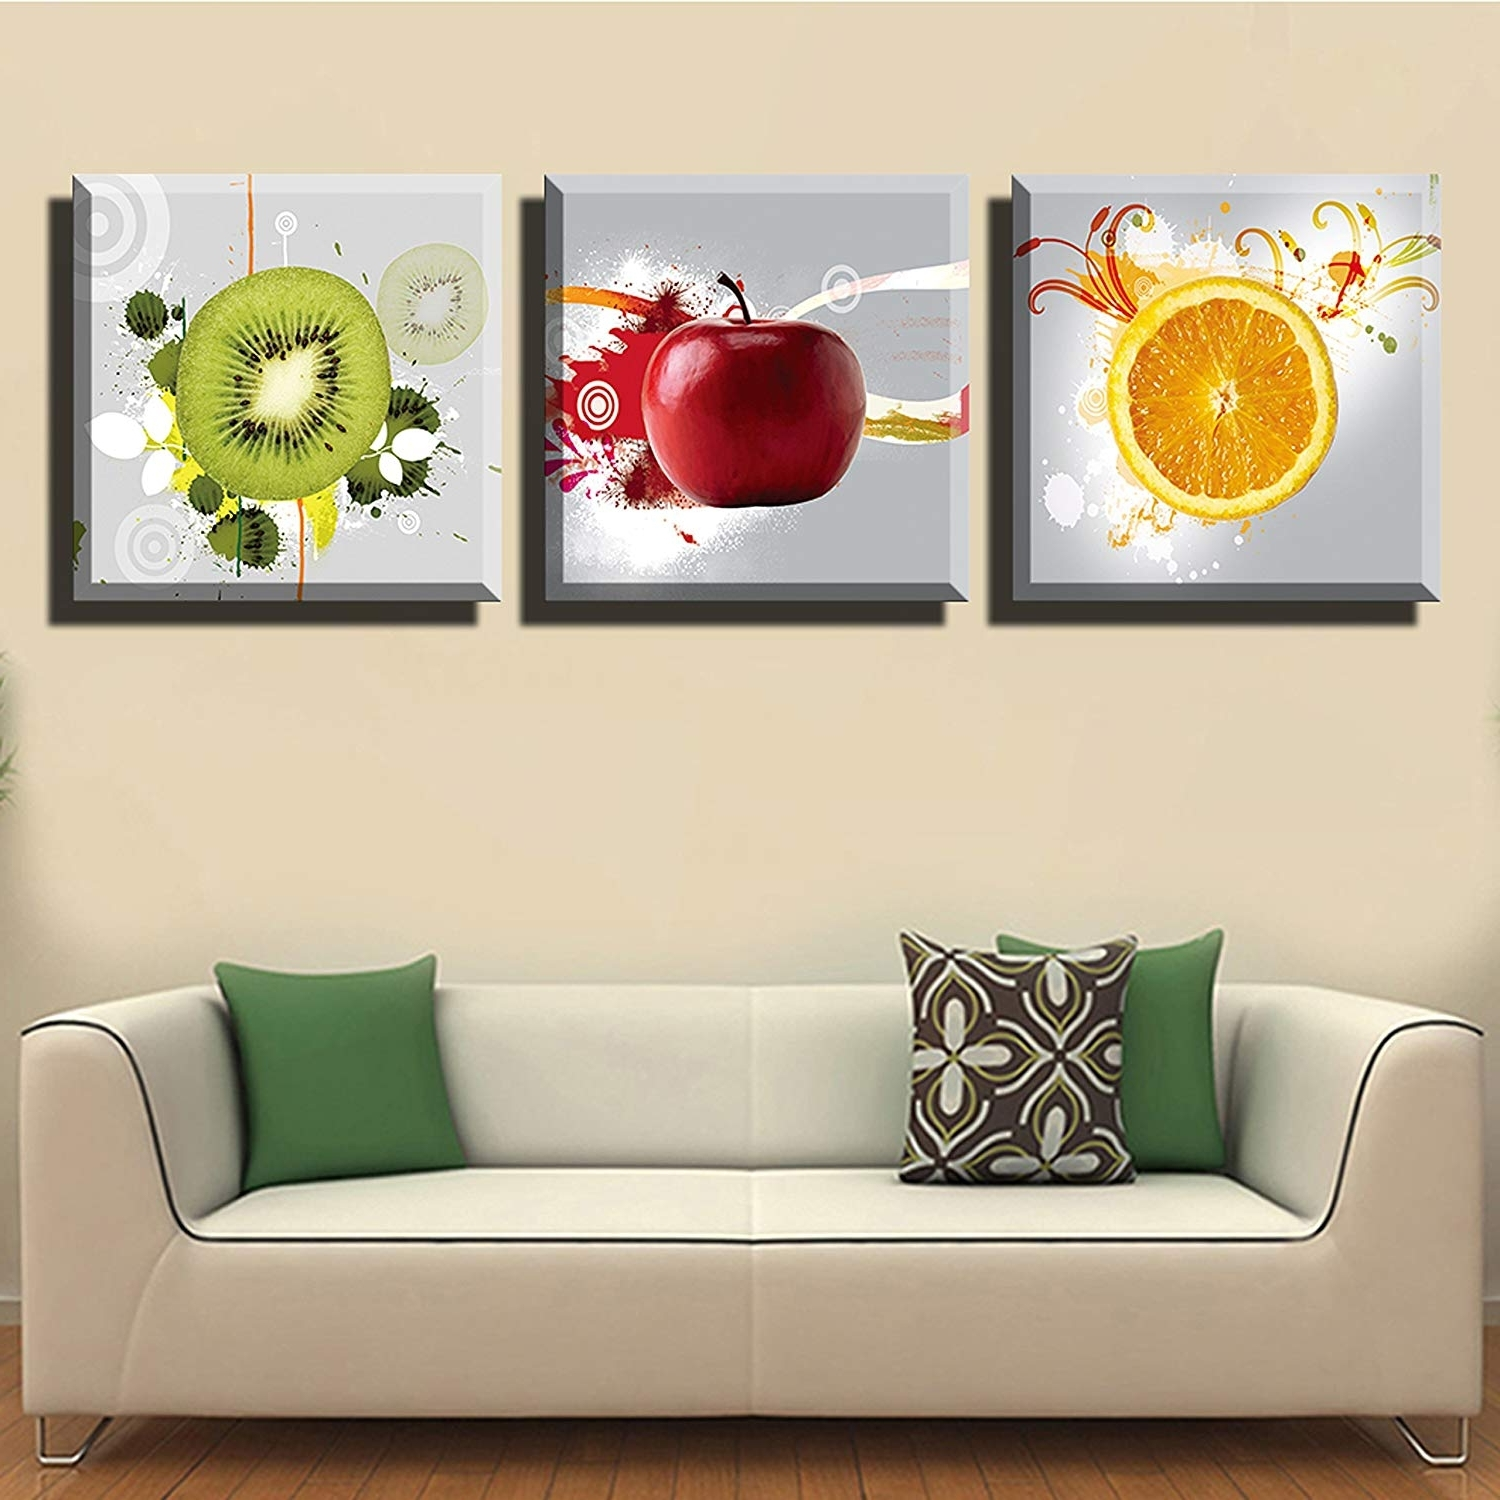 Wall Art Prints Throughout Well Known Amazon: Lyglo Canvas Prints – Bright And Vibrant Fruit Canvas (View 4 of 15)